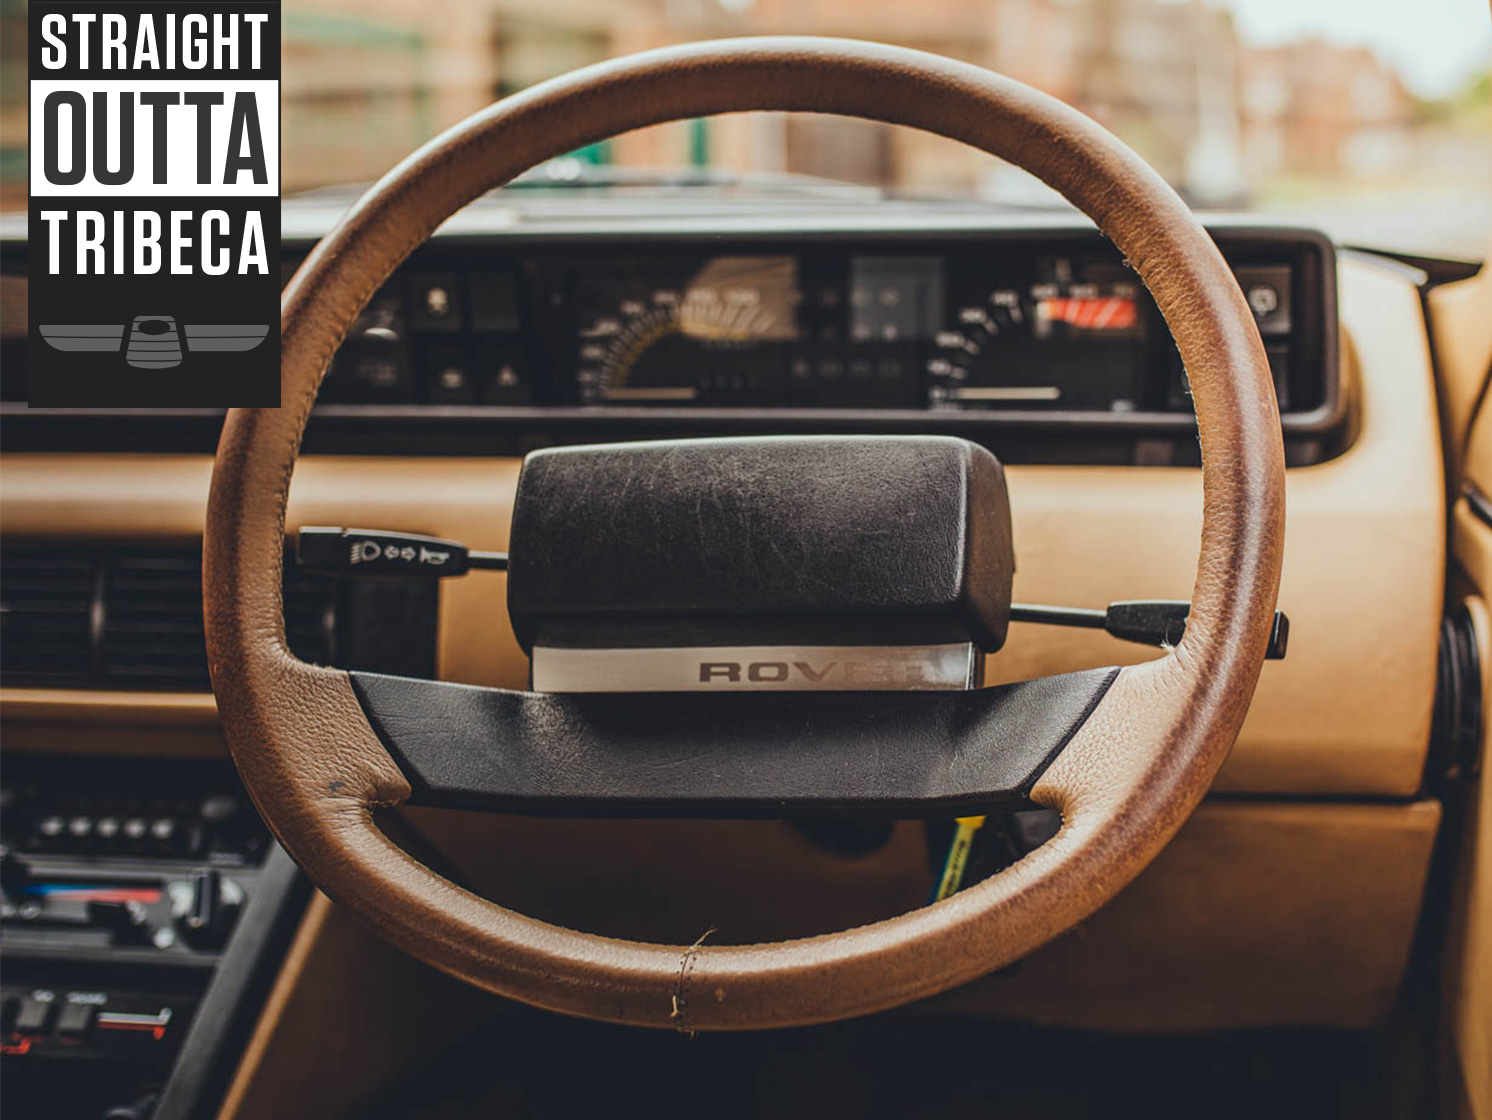 The campaign for real steering wheels